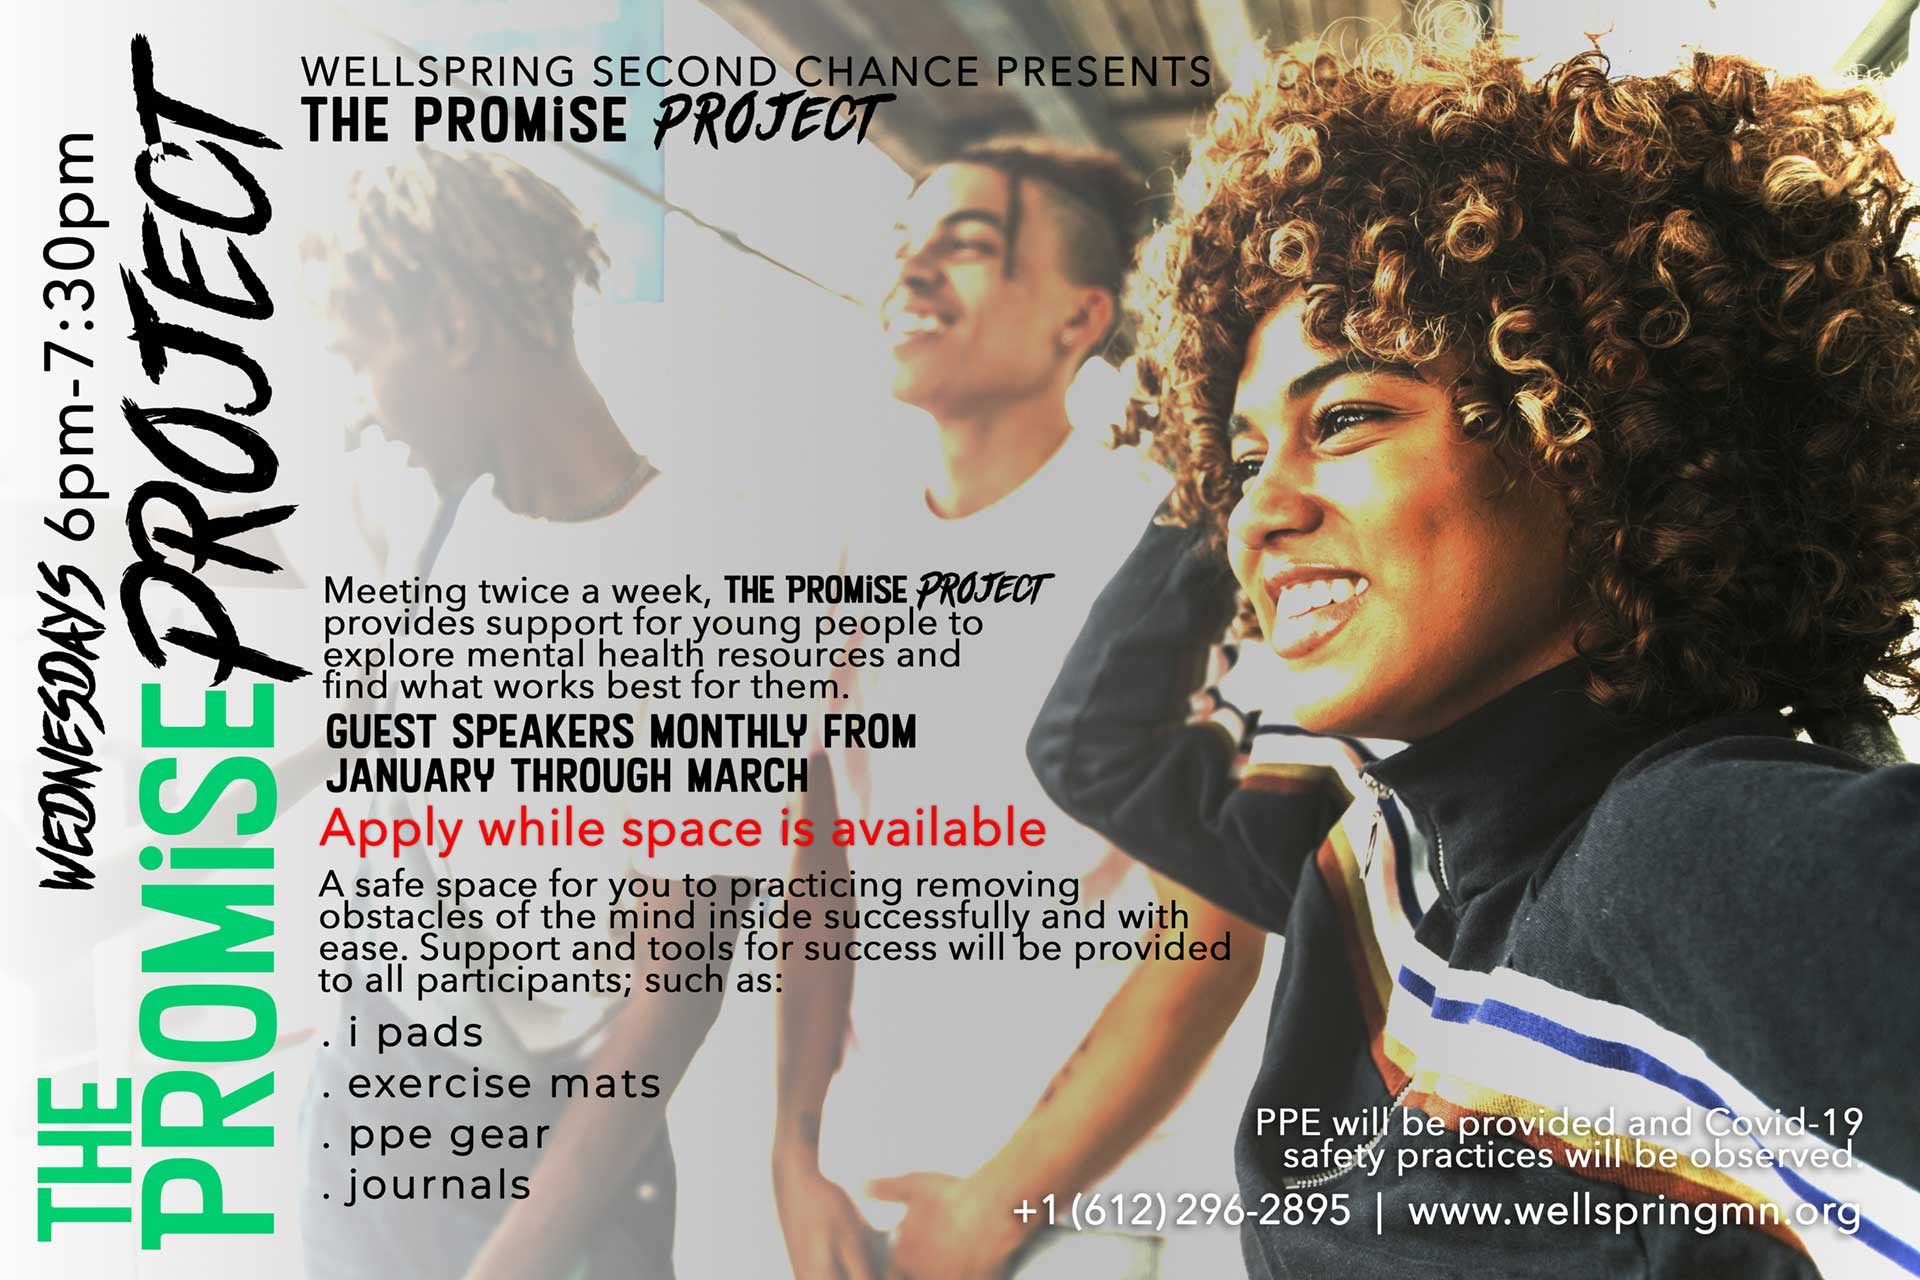 the Promise Project